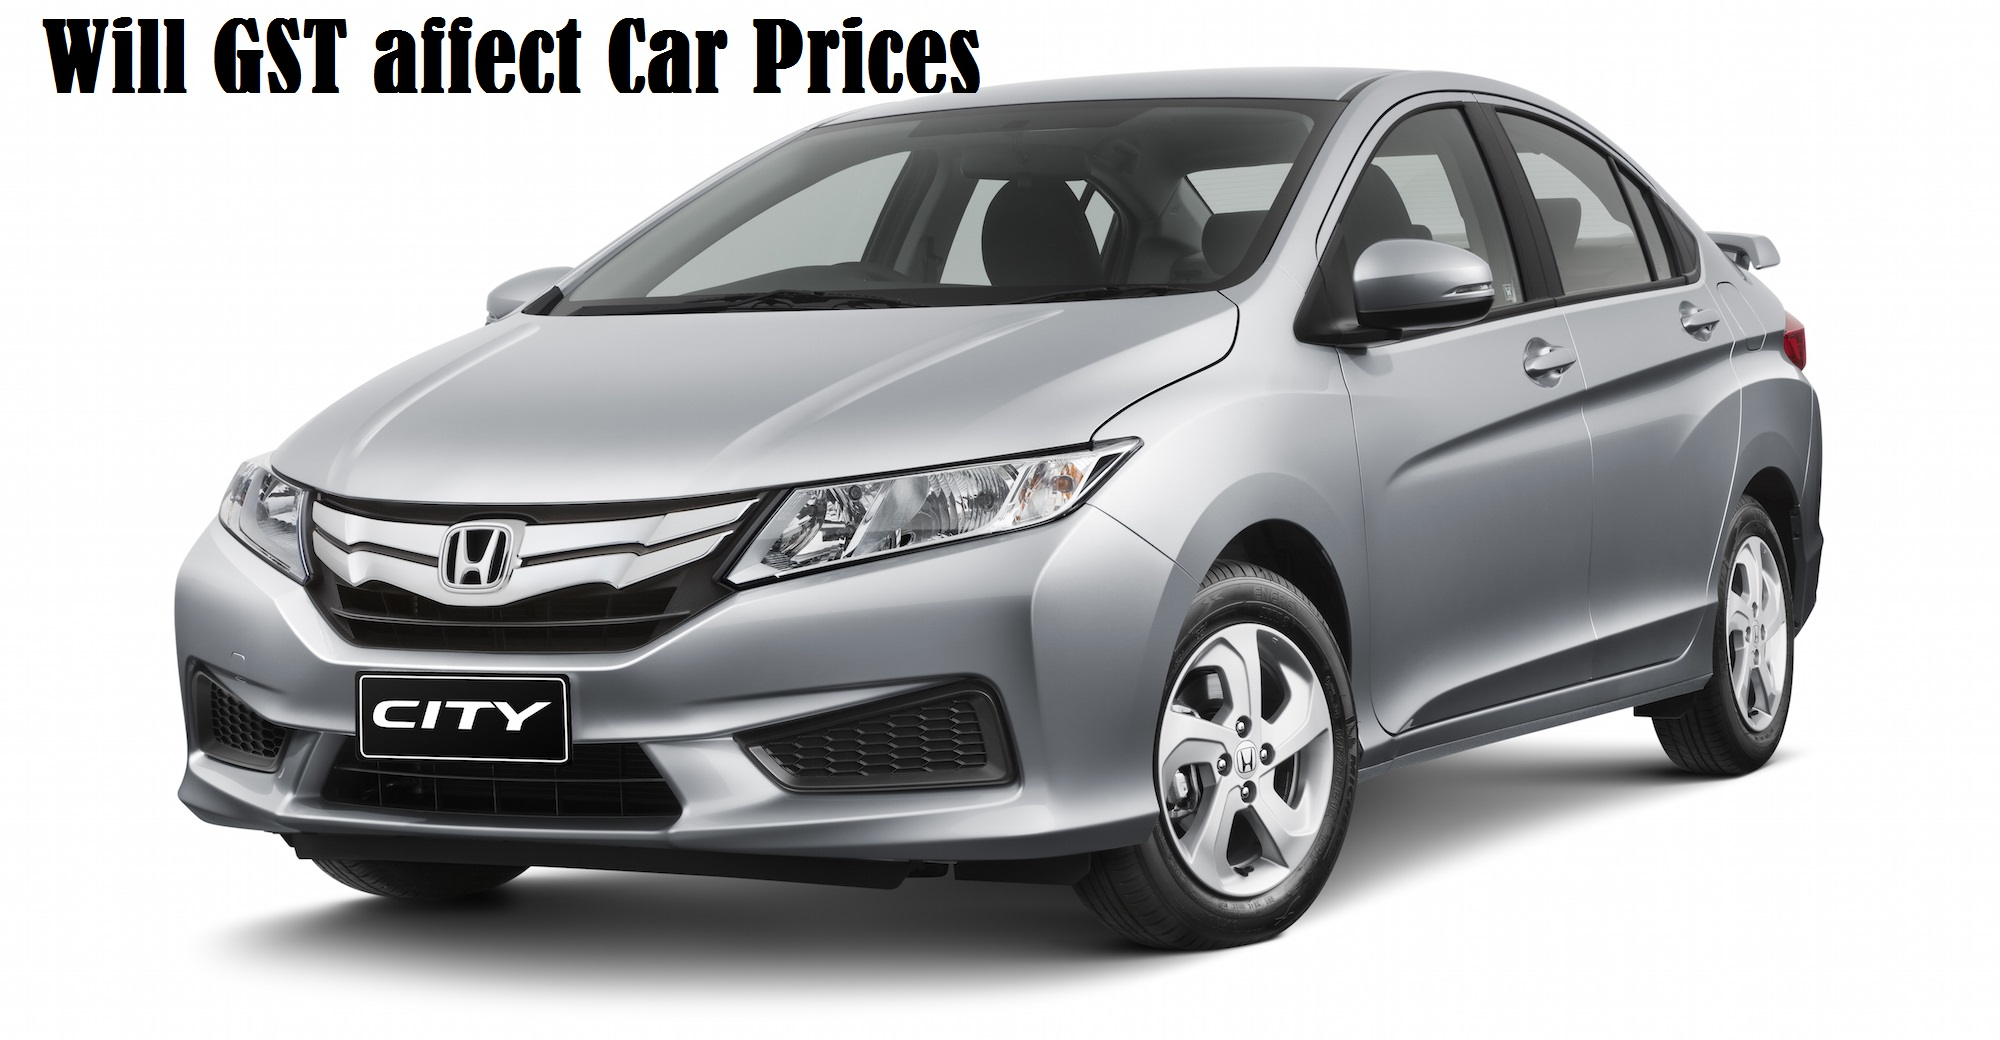 GST Affect on car prices